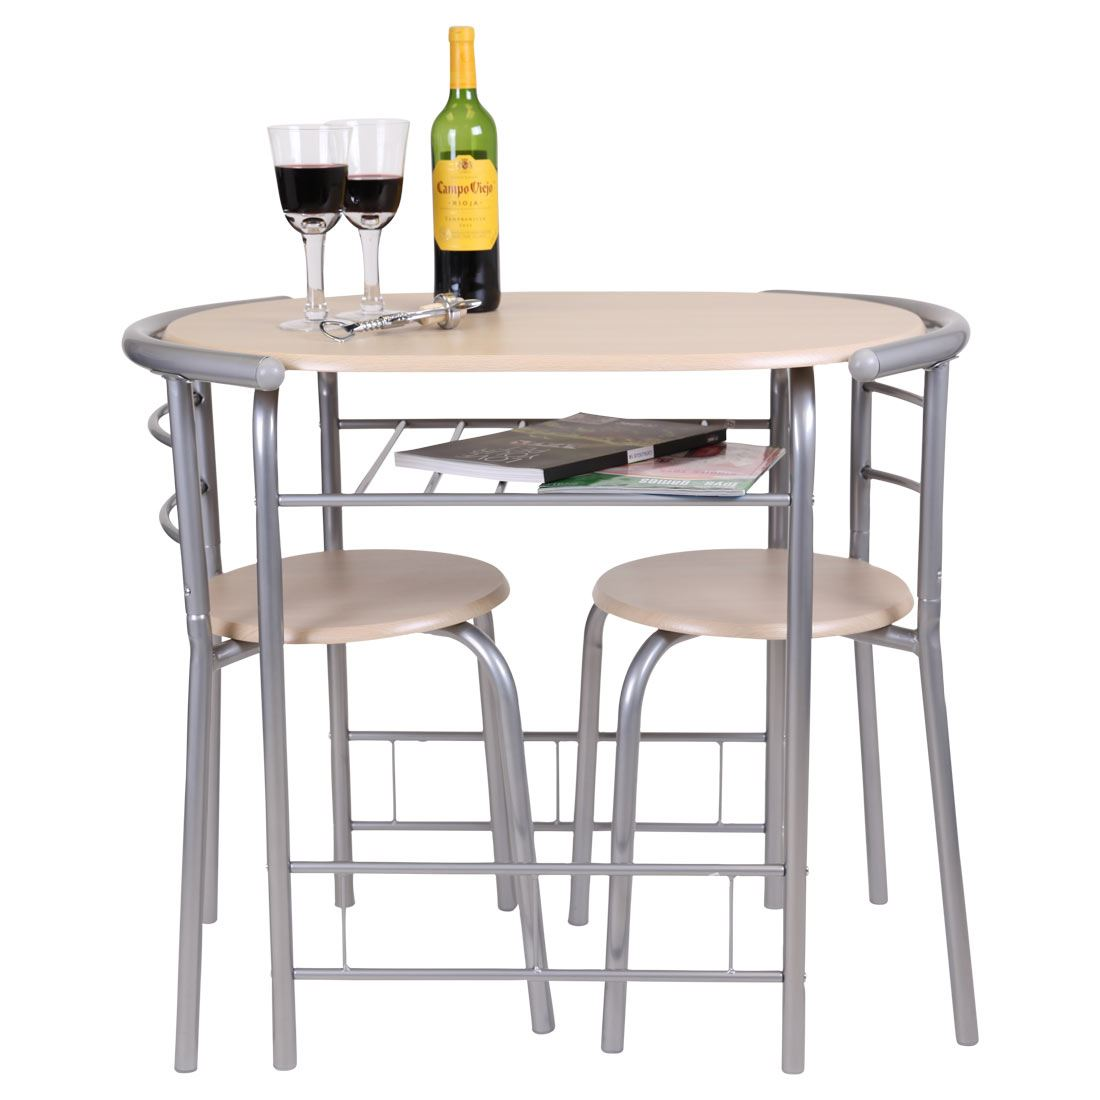 Chicago 3 piece dining table and 2 chair set breakfast kitchen bistro bar ebay - Bench kitchen set ...